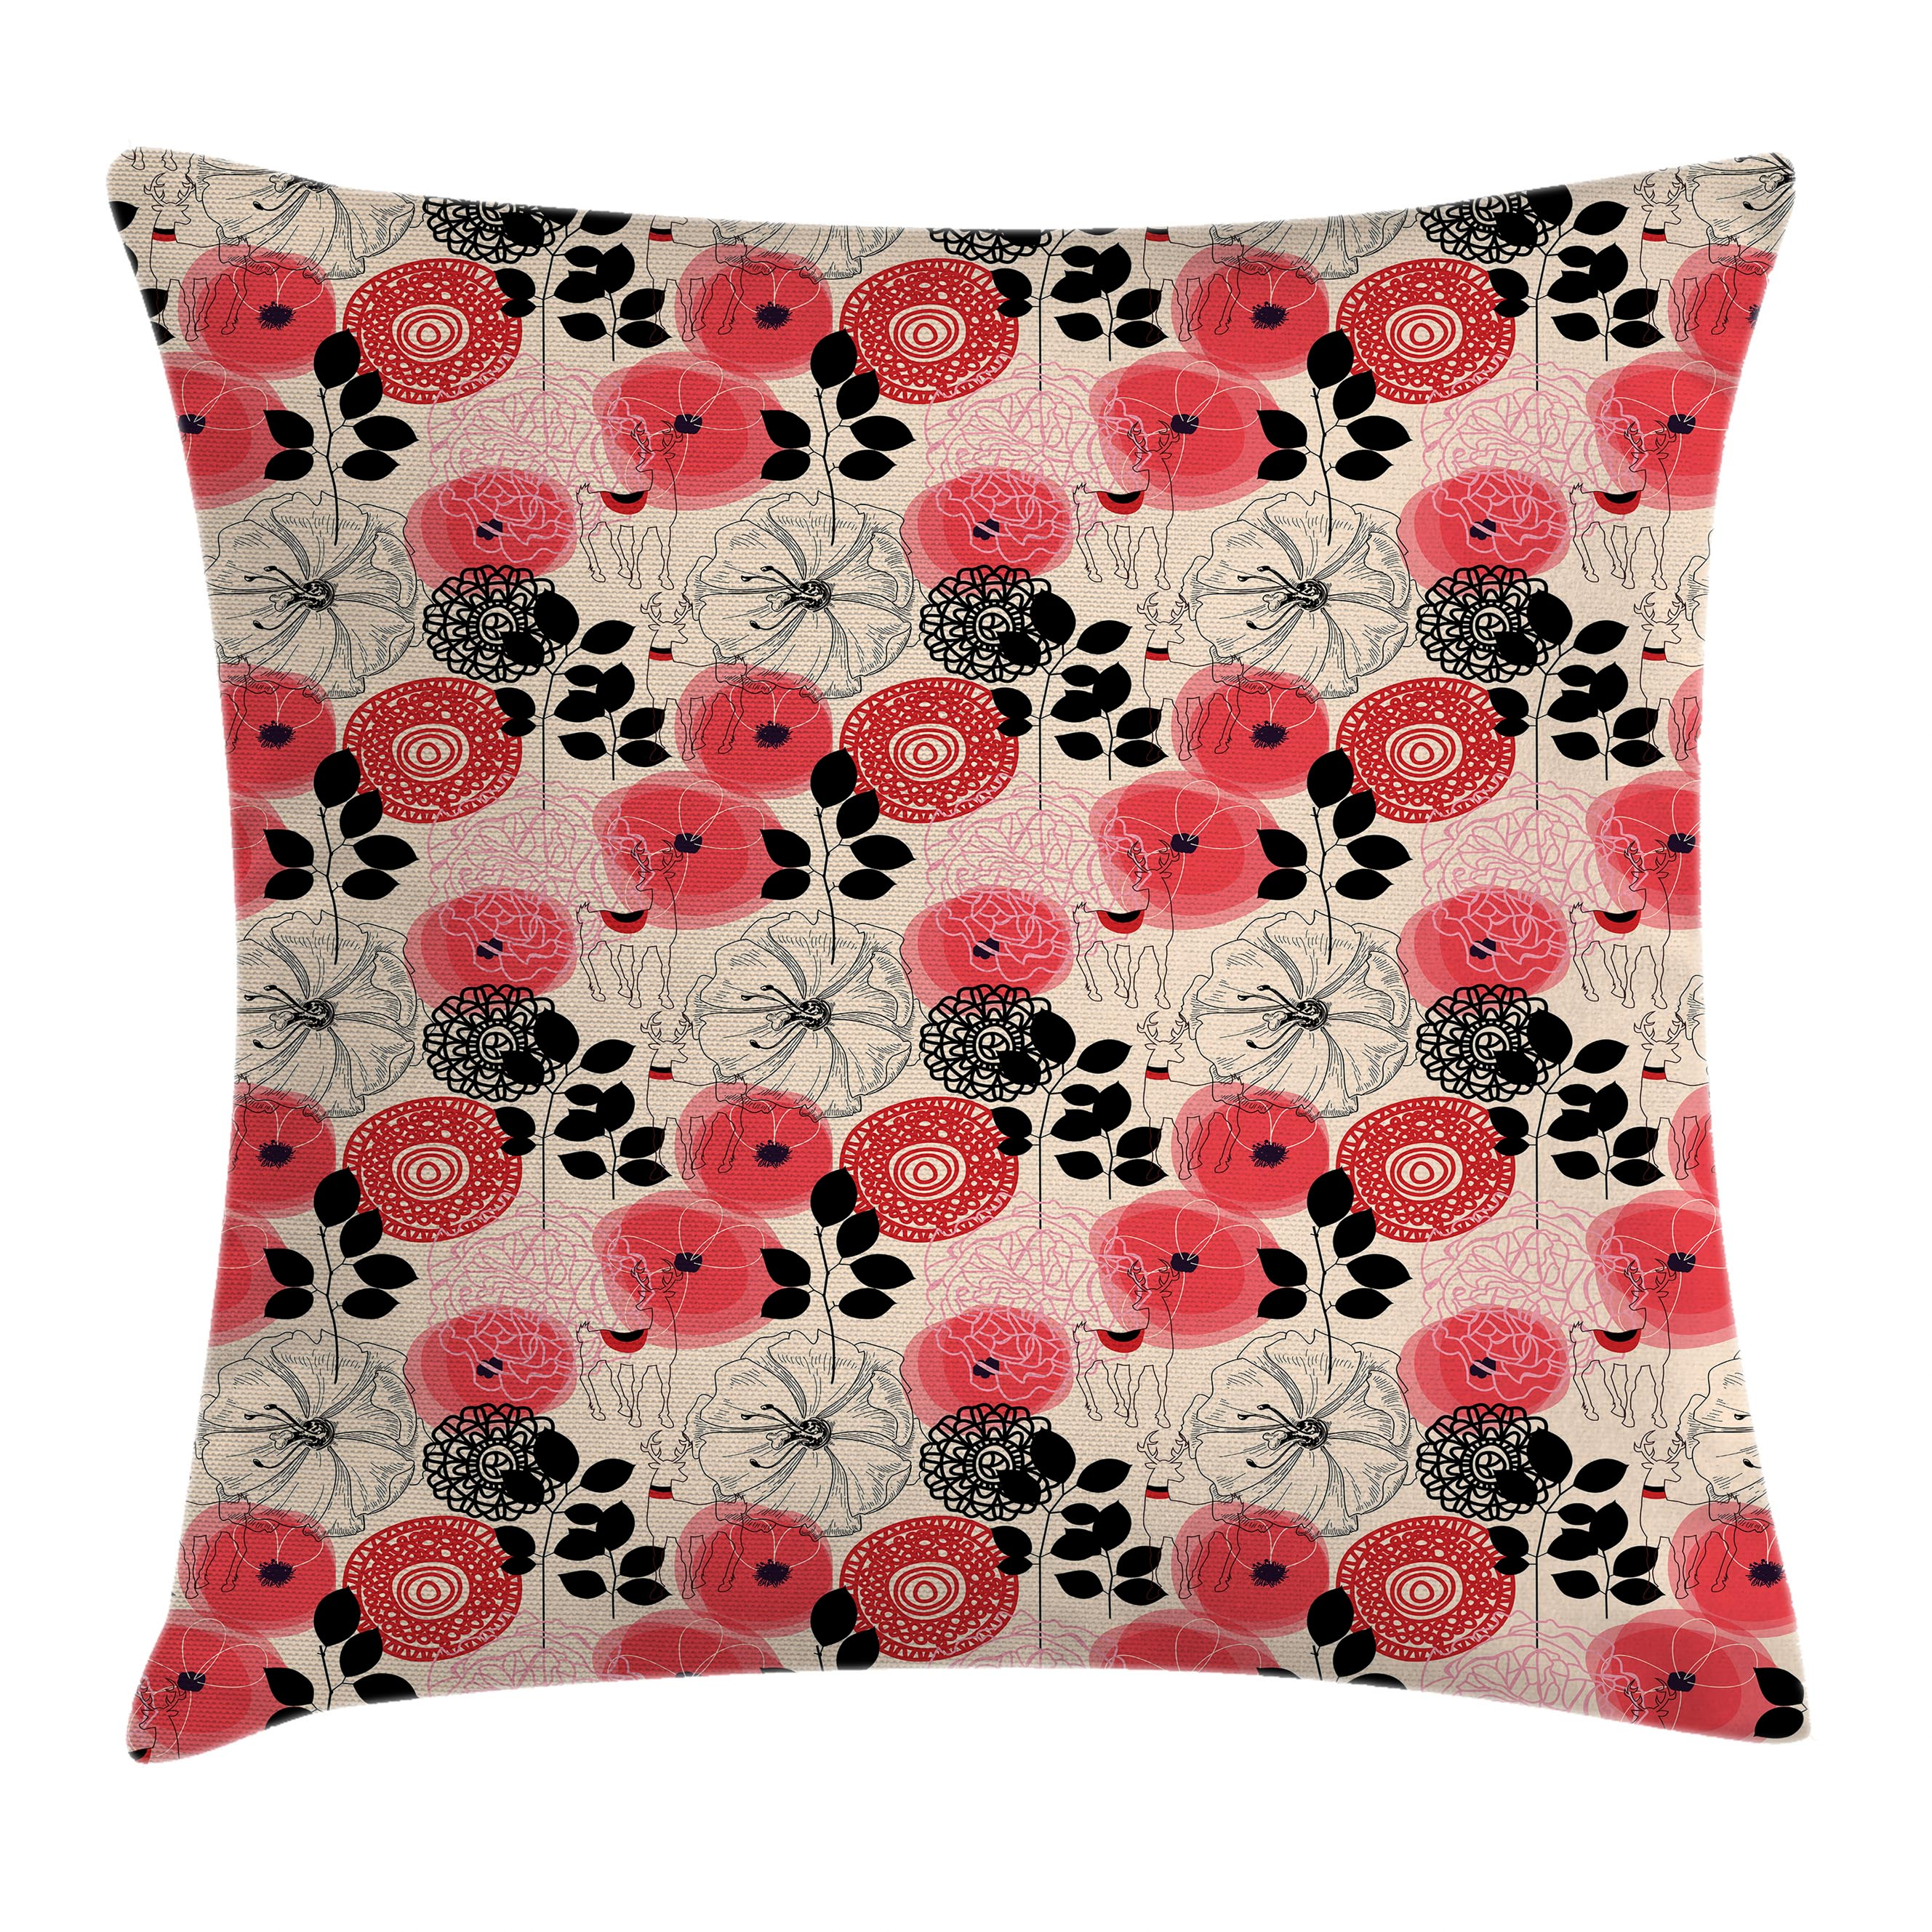 Floral Decor Throw Pillow Cushion Cover, Modern Decorative Big Circled Abstract Flowers Blossoms and Leaves Artwork, Decorative Square Accent Pillow Case, 18 X 18 Inches, Pink and Black, by Ambesonne